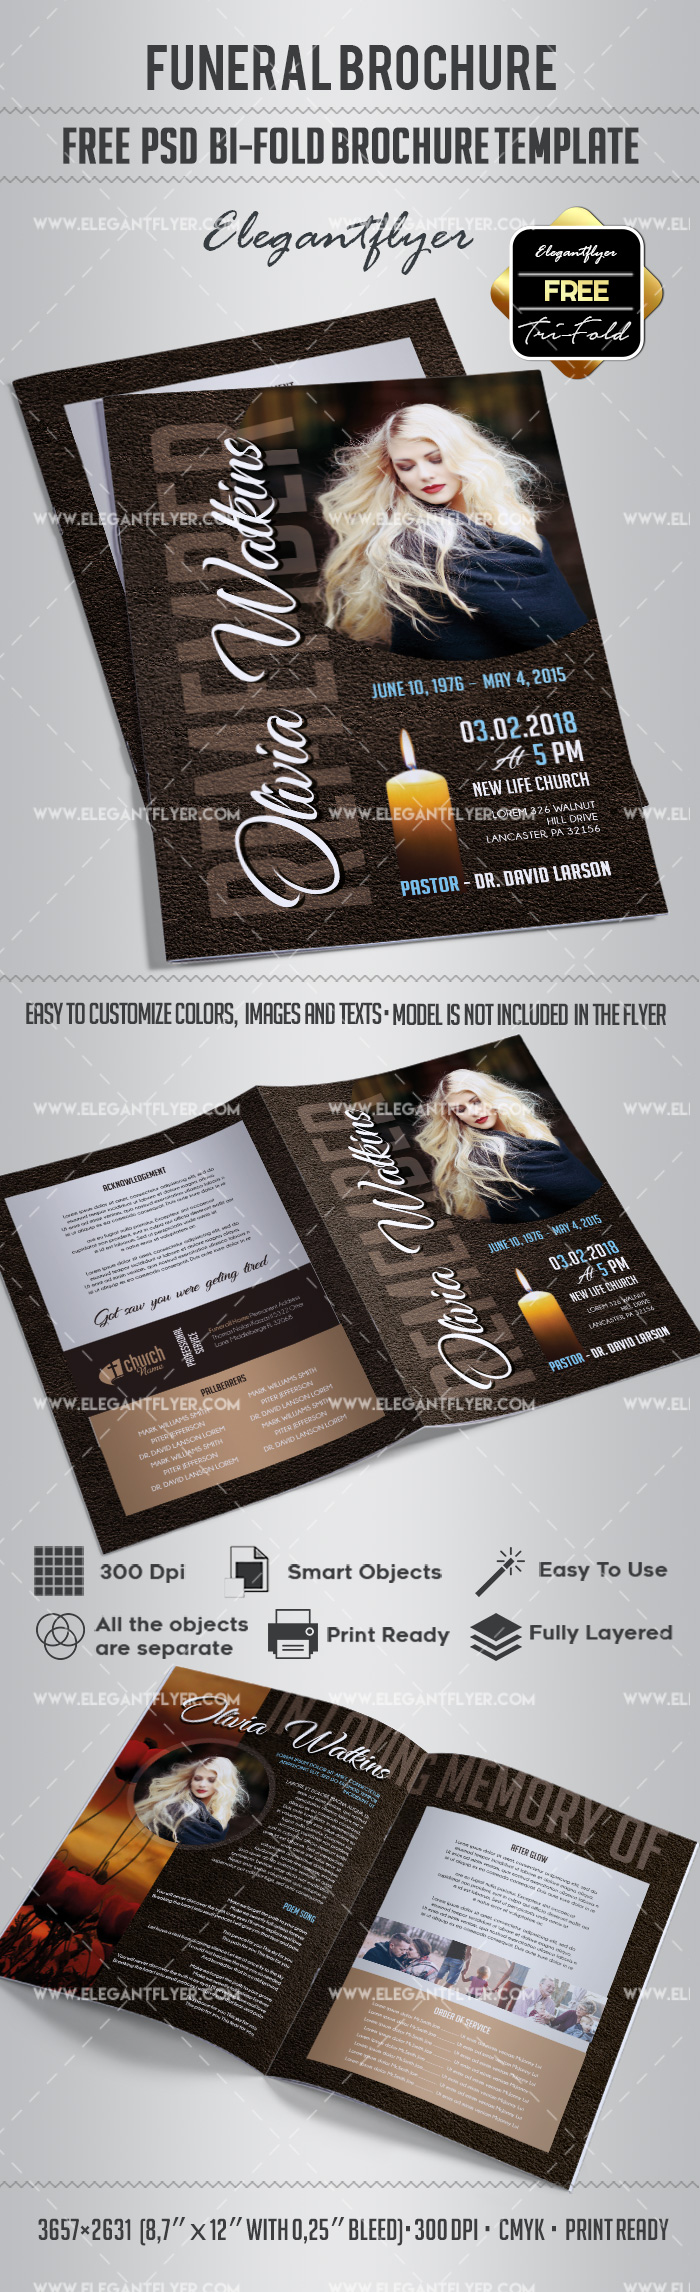 Free bi fold brochure for funeral by elegantflyer for Funeral brochure templates free